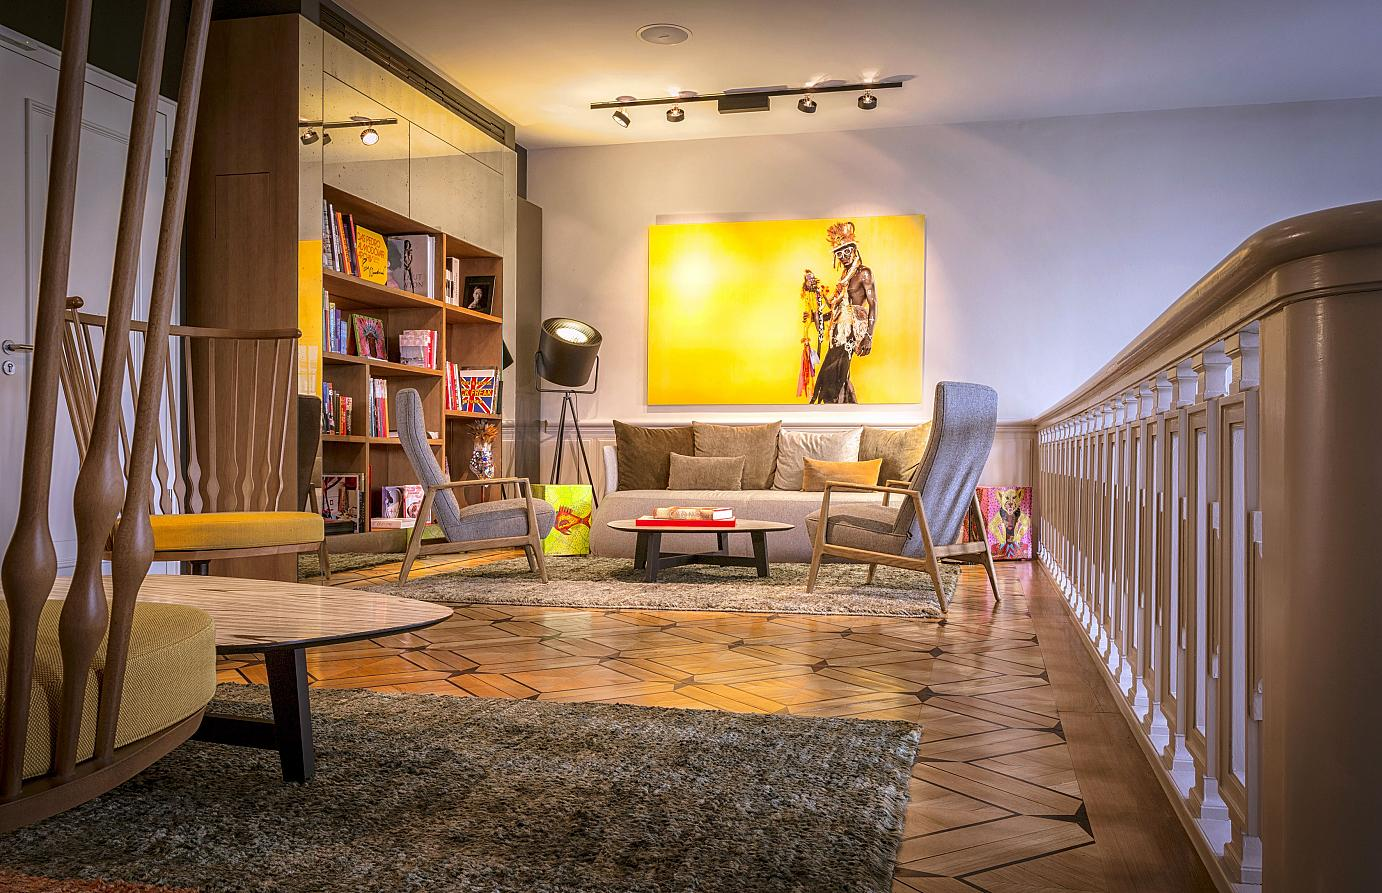 Comfy and relaxed: the Library in the historical front part of the building. Each storey profits from an expansive landing spreading between staircase and guestroom corridors. Bearing witness to the structure's grand  history are authentic parquet  floors, French doors or original decorative elements restored back to their former beauty. The three-storey library holds a wealth of books on art, architecture and culture and – as a tribute to the nearby zoo - randomly positioned animal figures. Embellishing handicraft, photographs and Cajons from Panama dowse to the third floor into a colourful and cozy atmosphere.